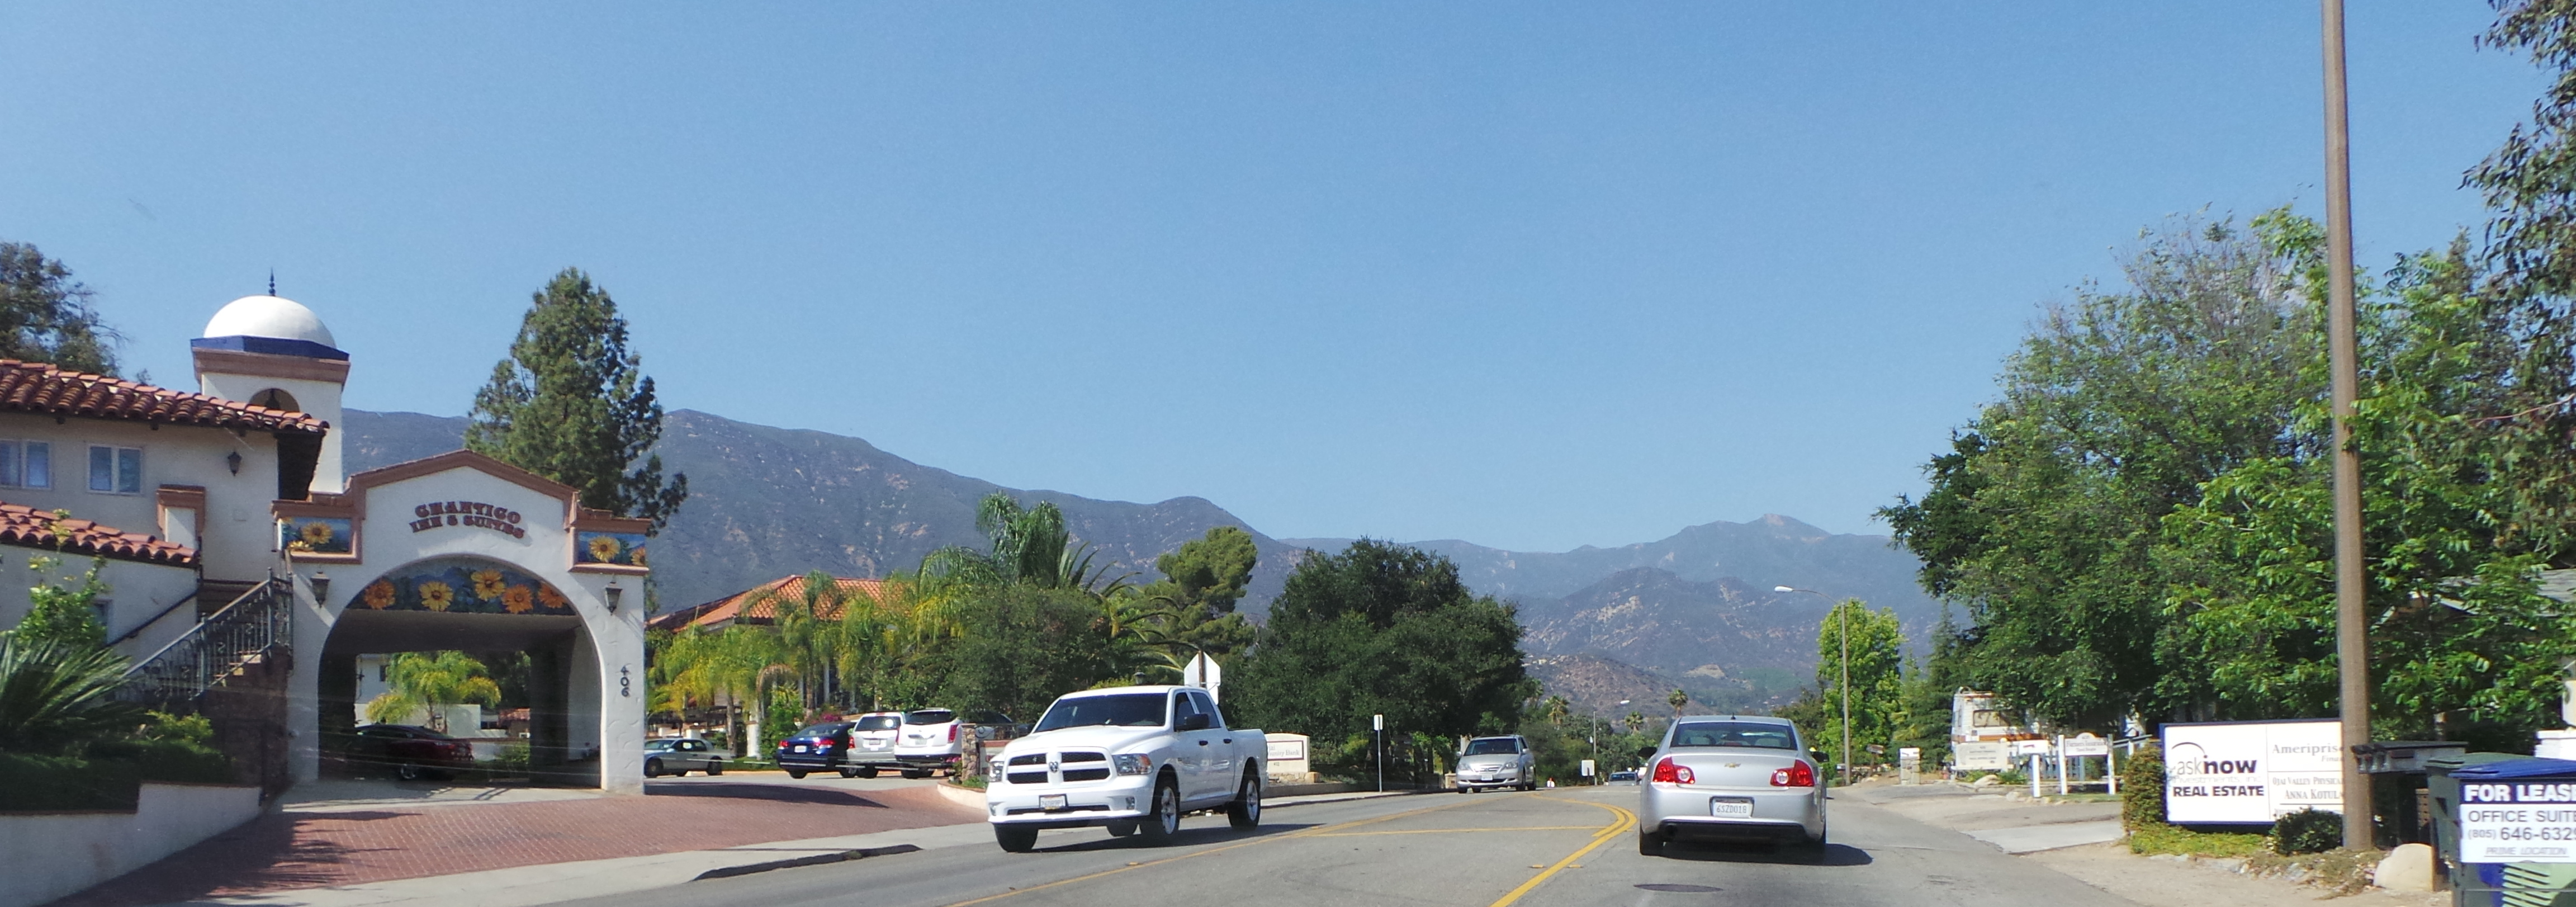 In Ojai Itself